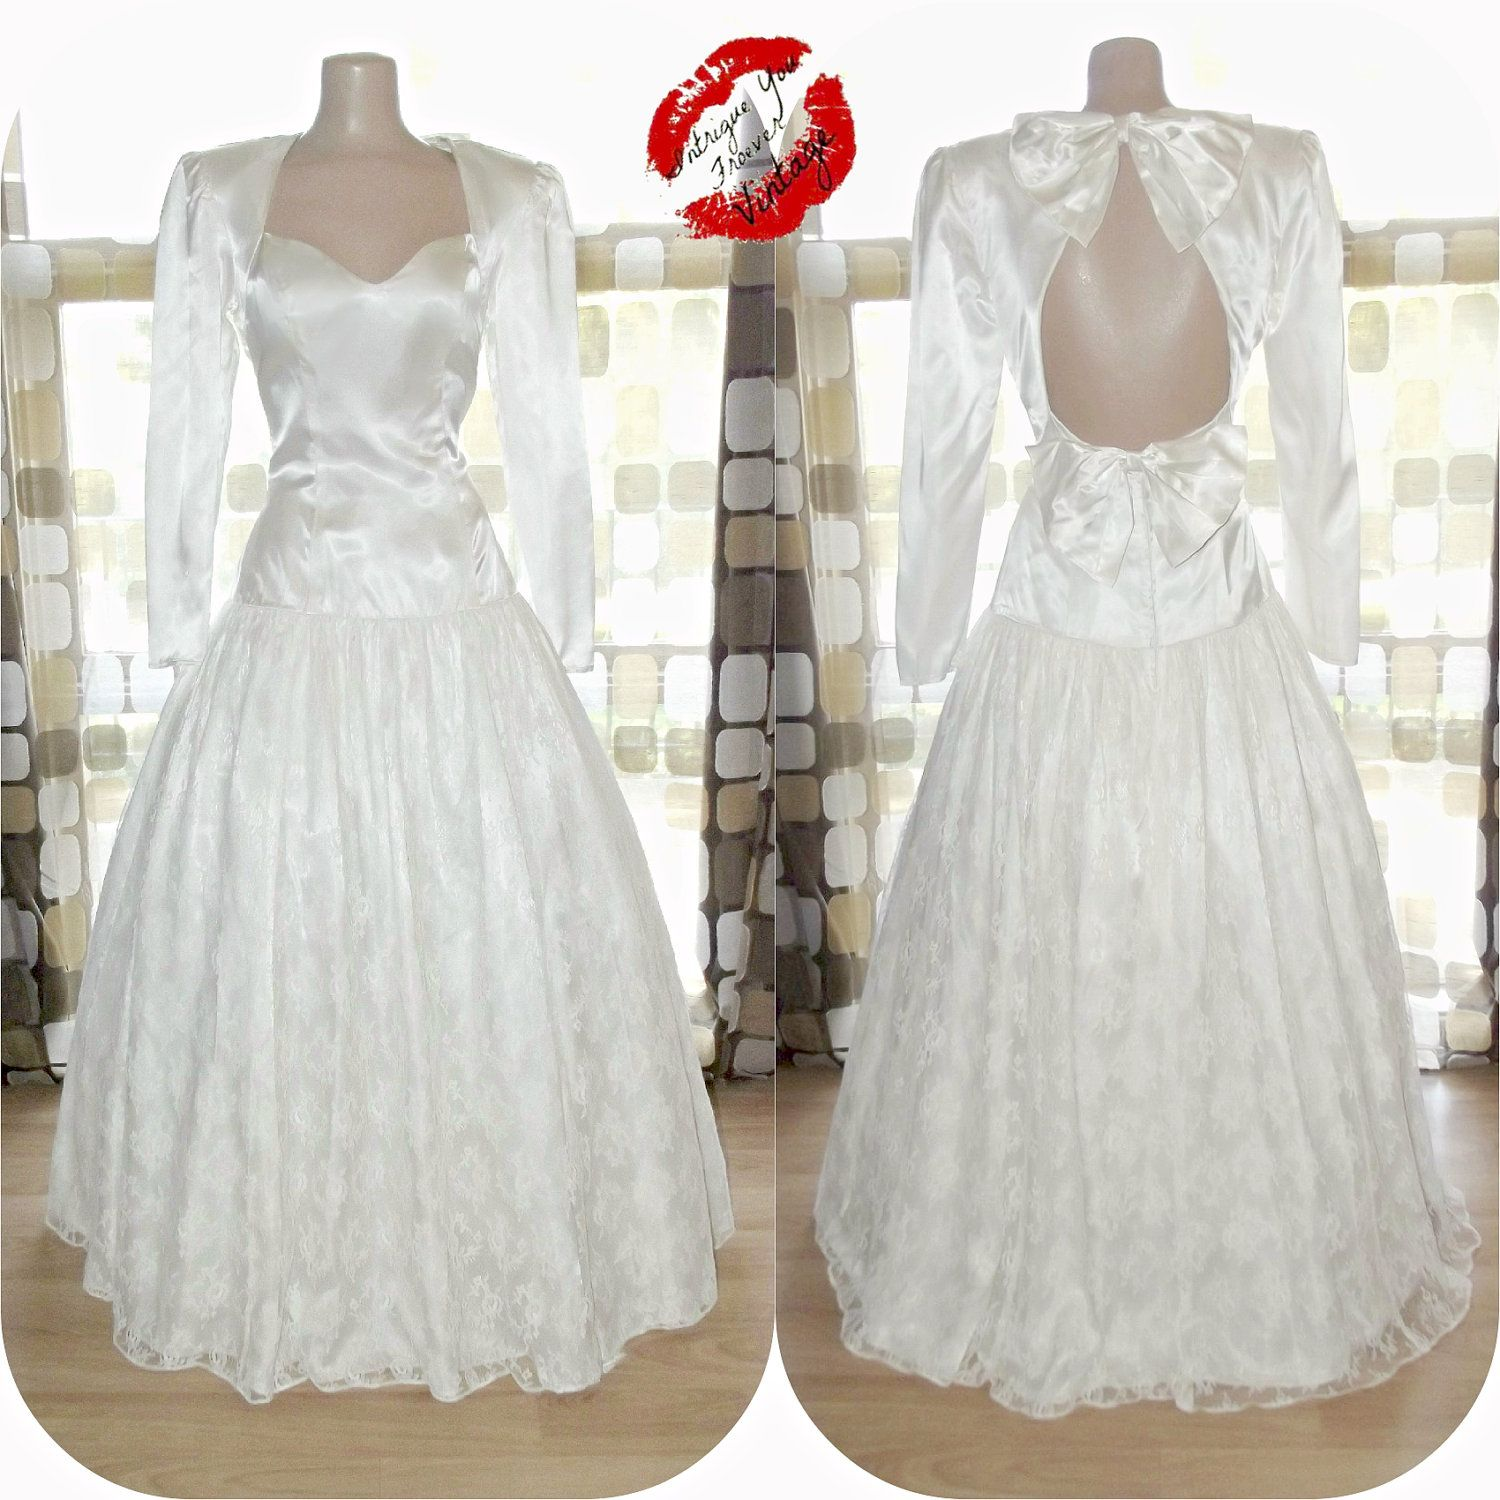 Vintage s ball gown s wedding dress white lace prom dress